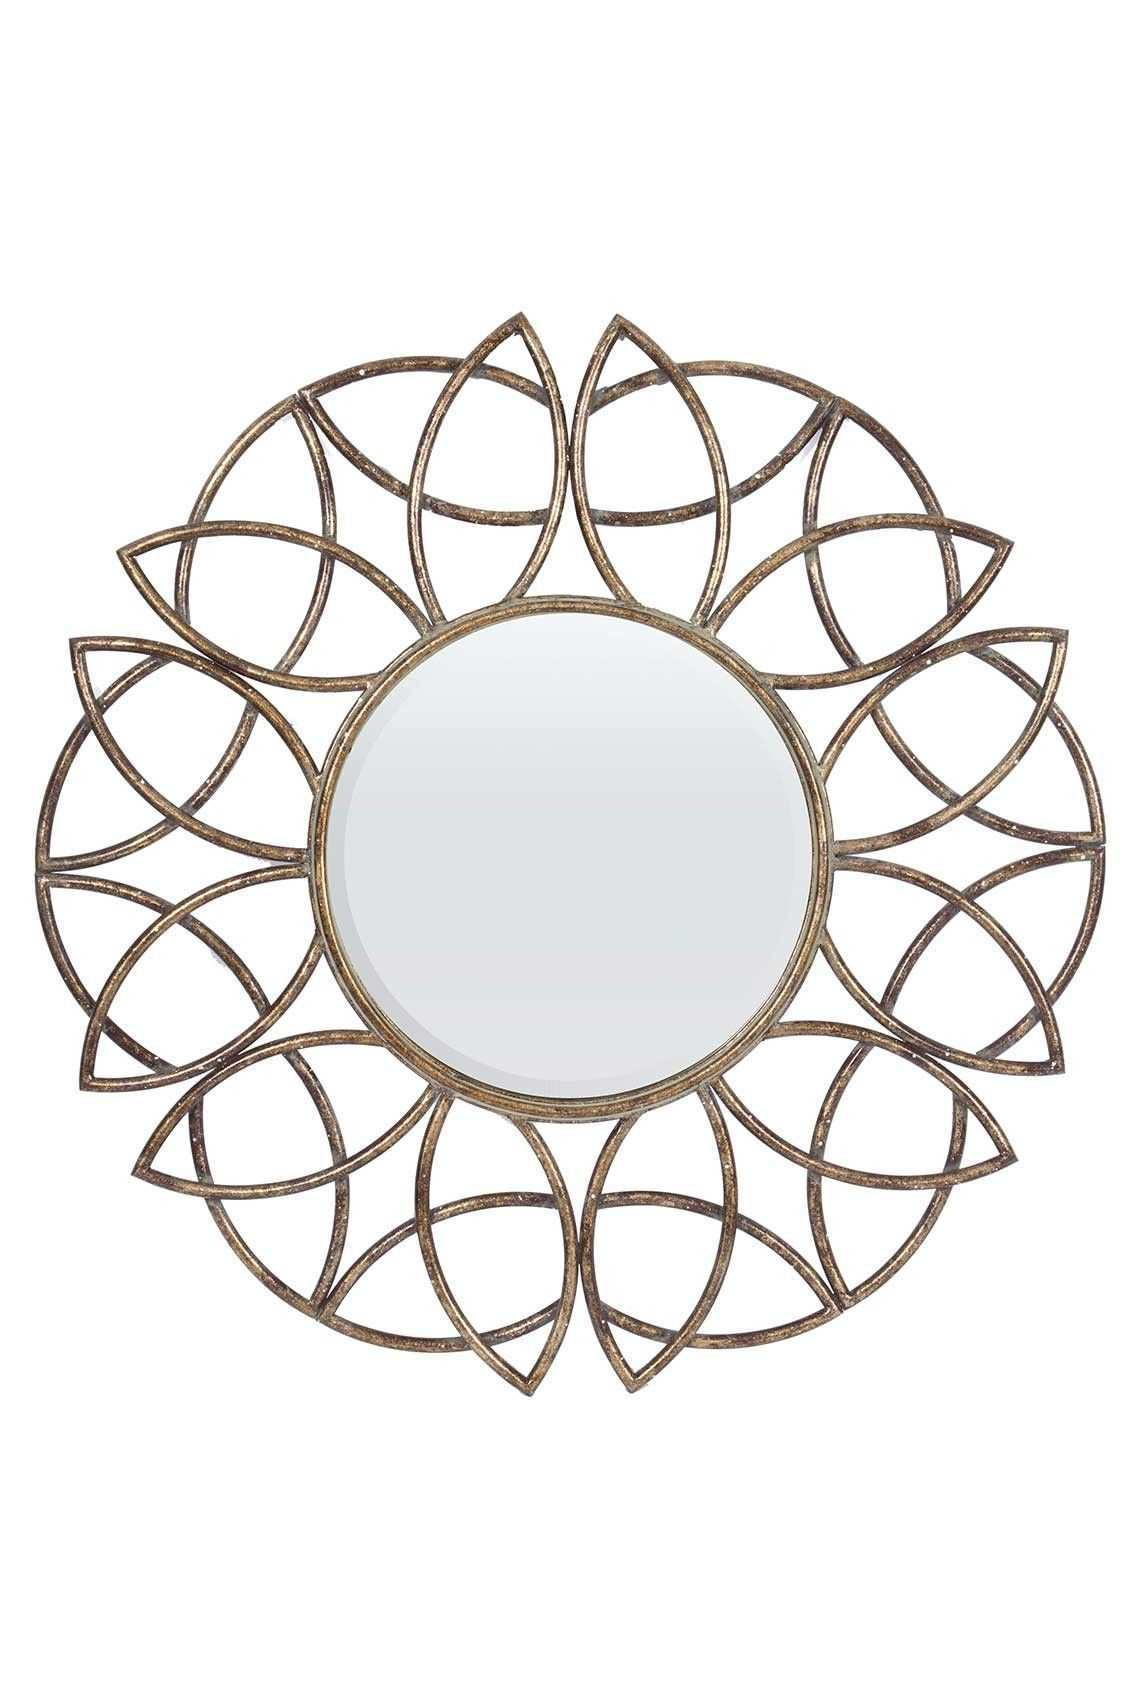 Big Round Mirror Beautiful Round Stylish Bronze Finish Wall Mirror 3ft 90 5cm